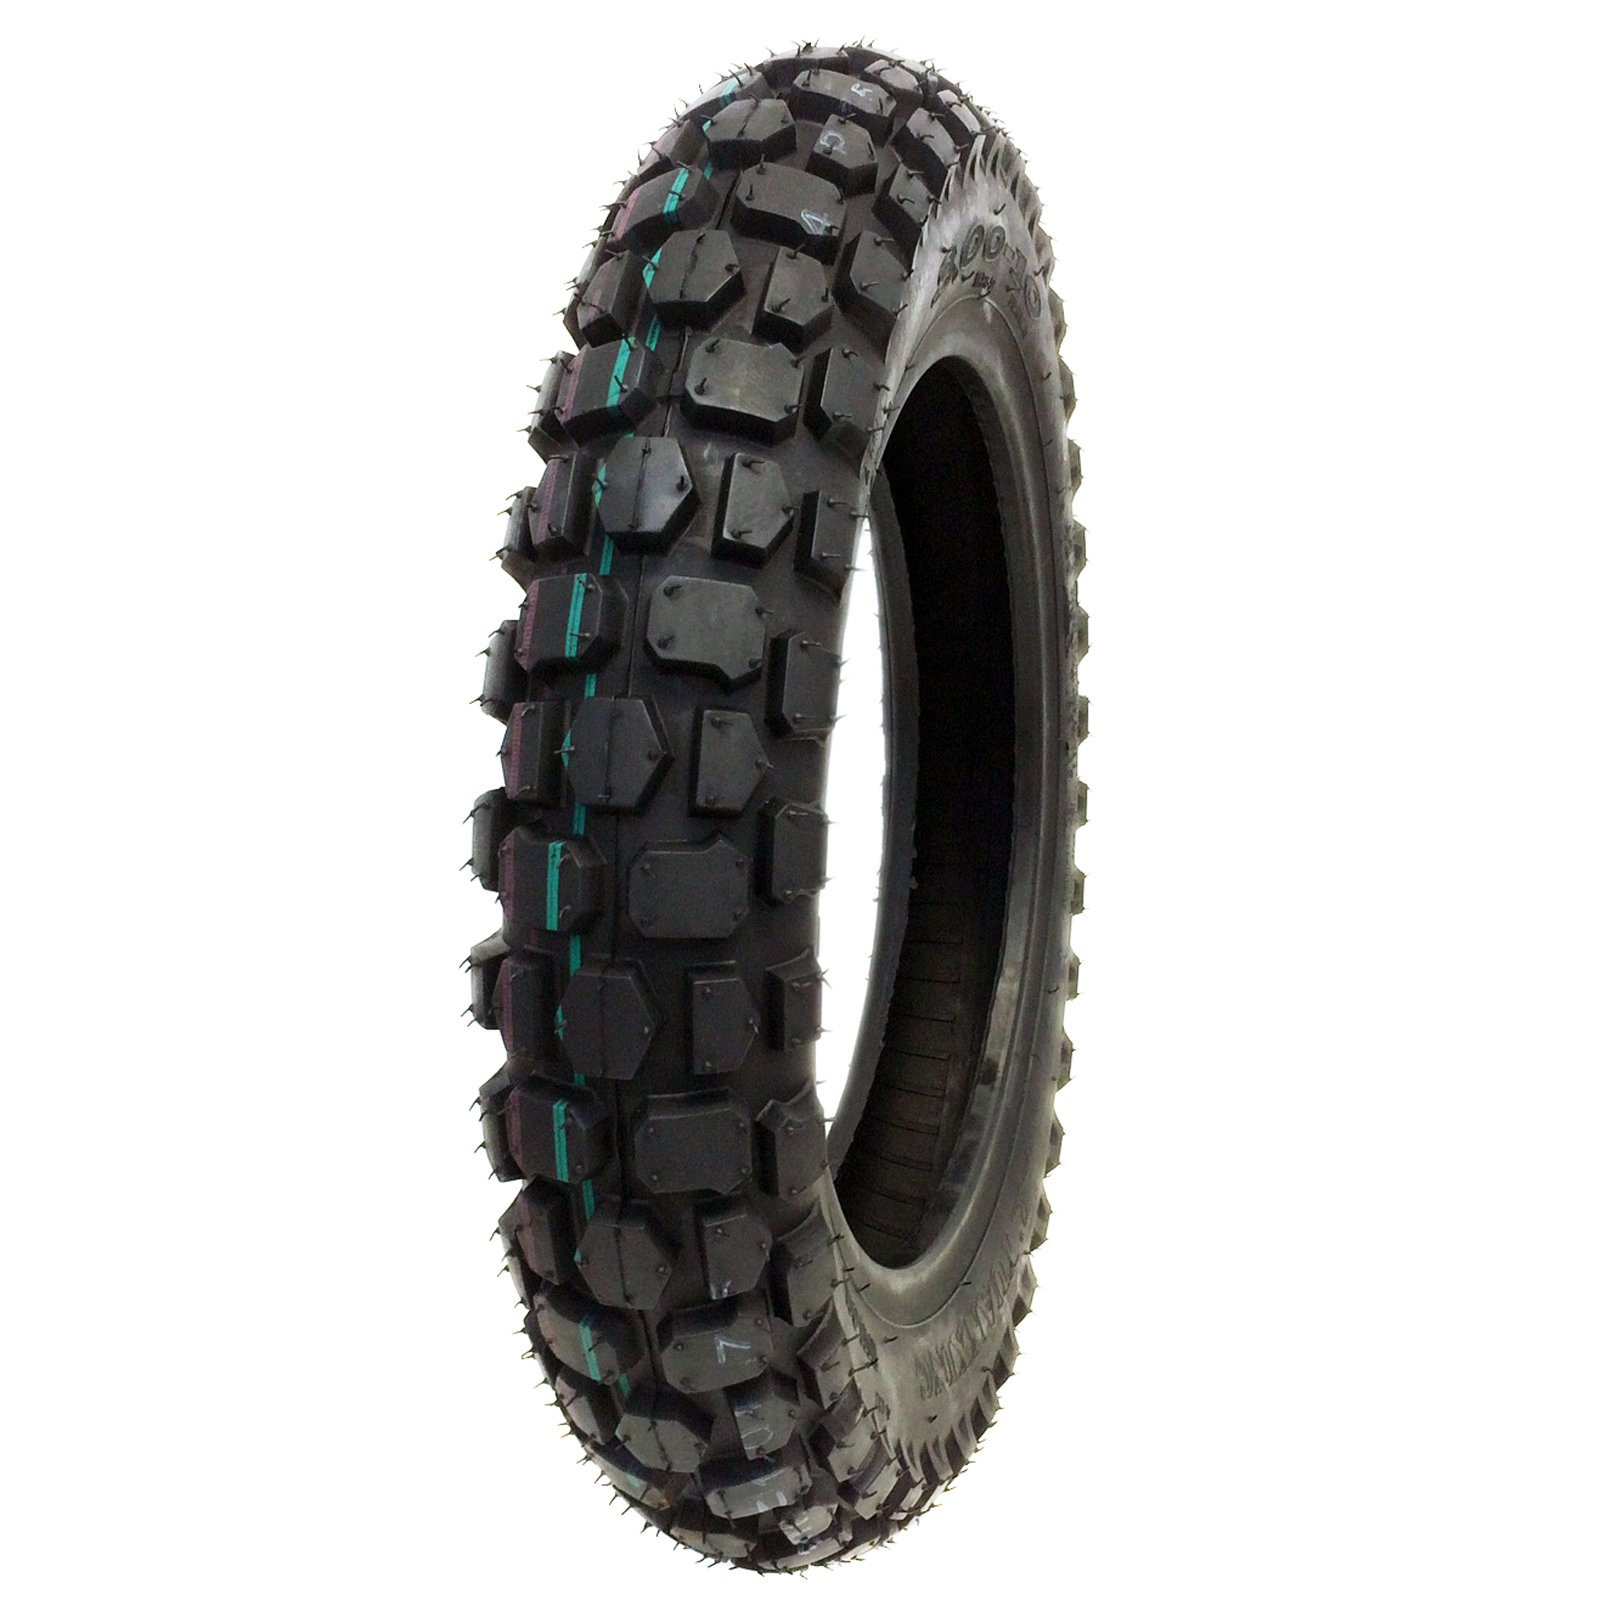 TIRE SET: Front 2.50-10 and Rear 3.00-10 Knobby Tread for Trail Off Road Dirt Bike Motocross Mini 10'' Rim